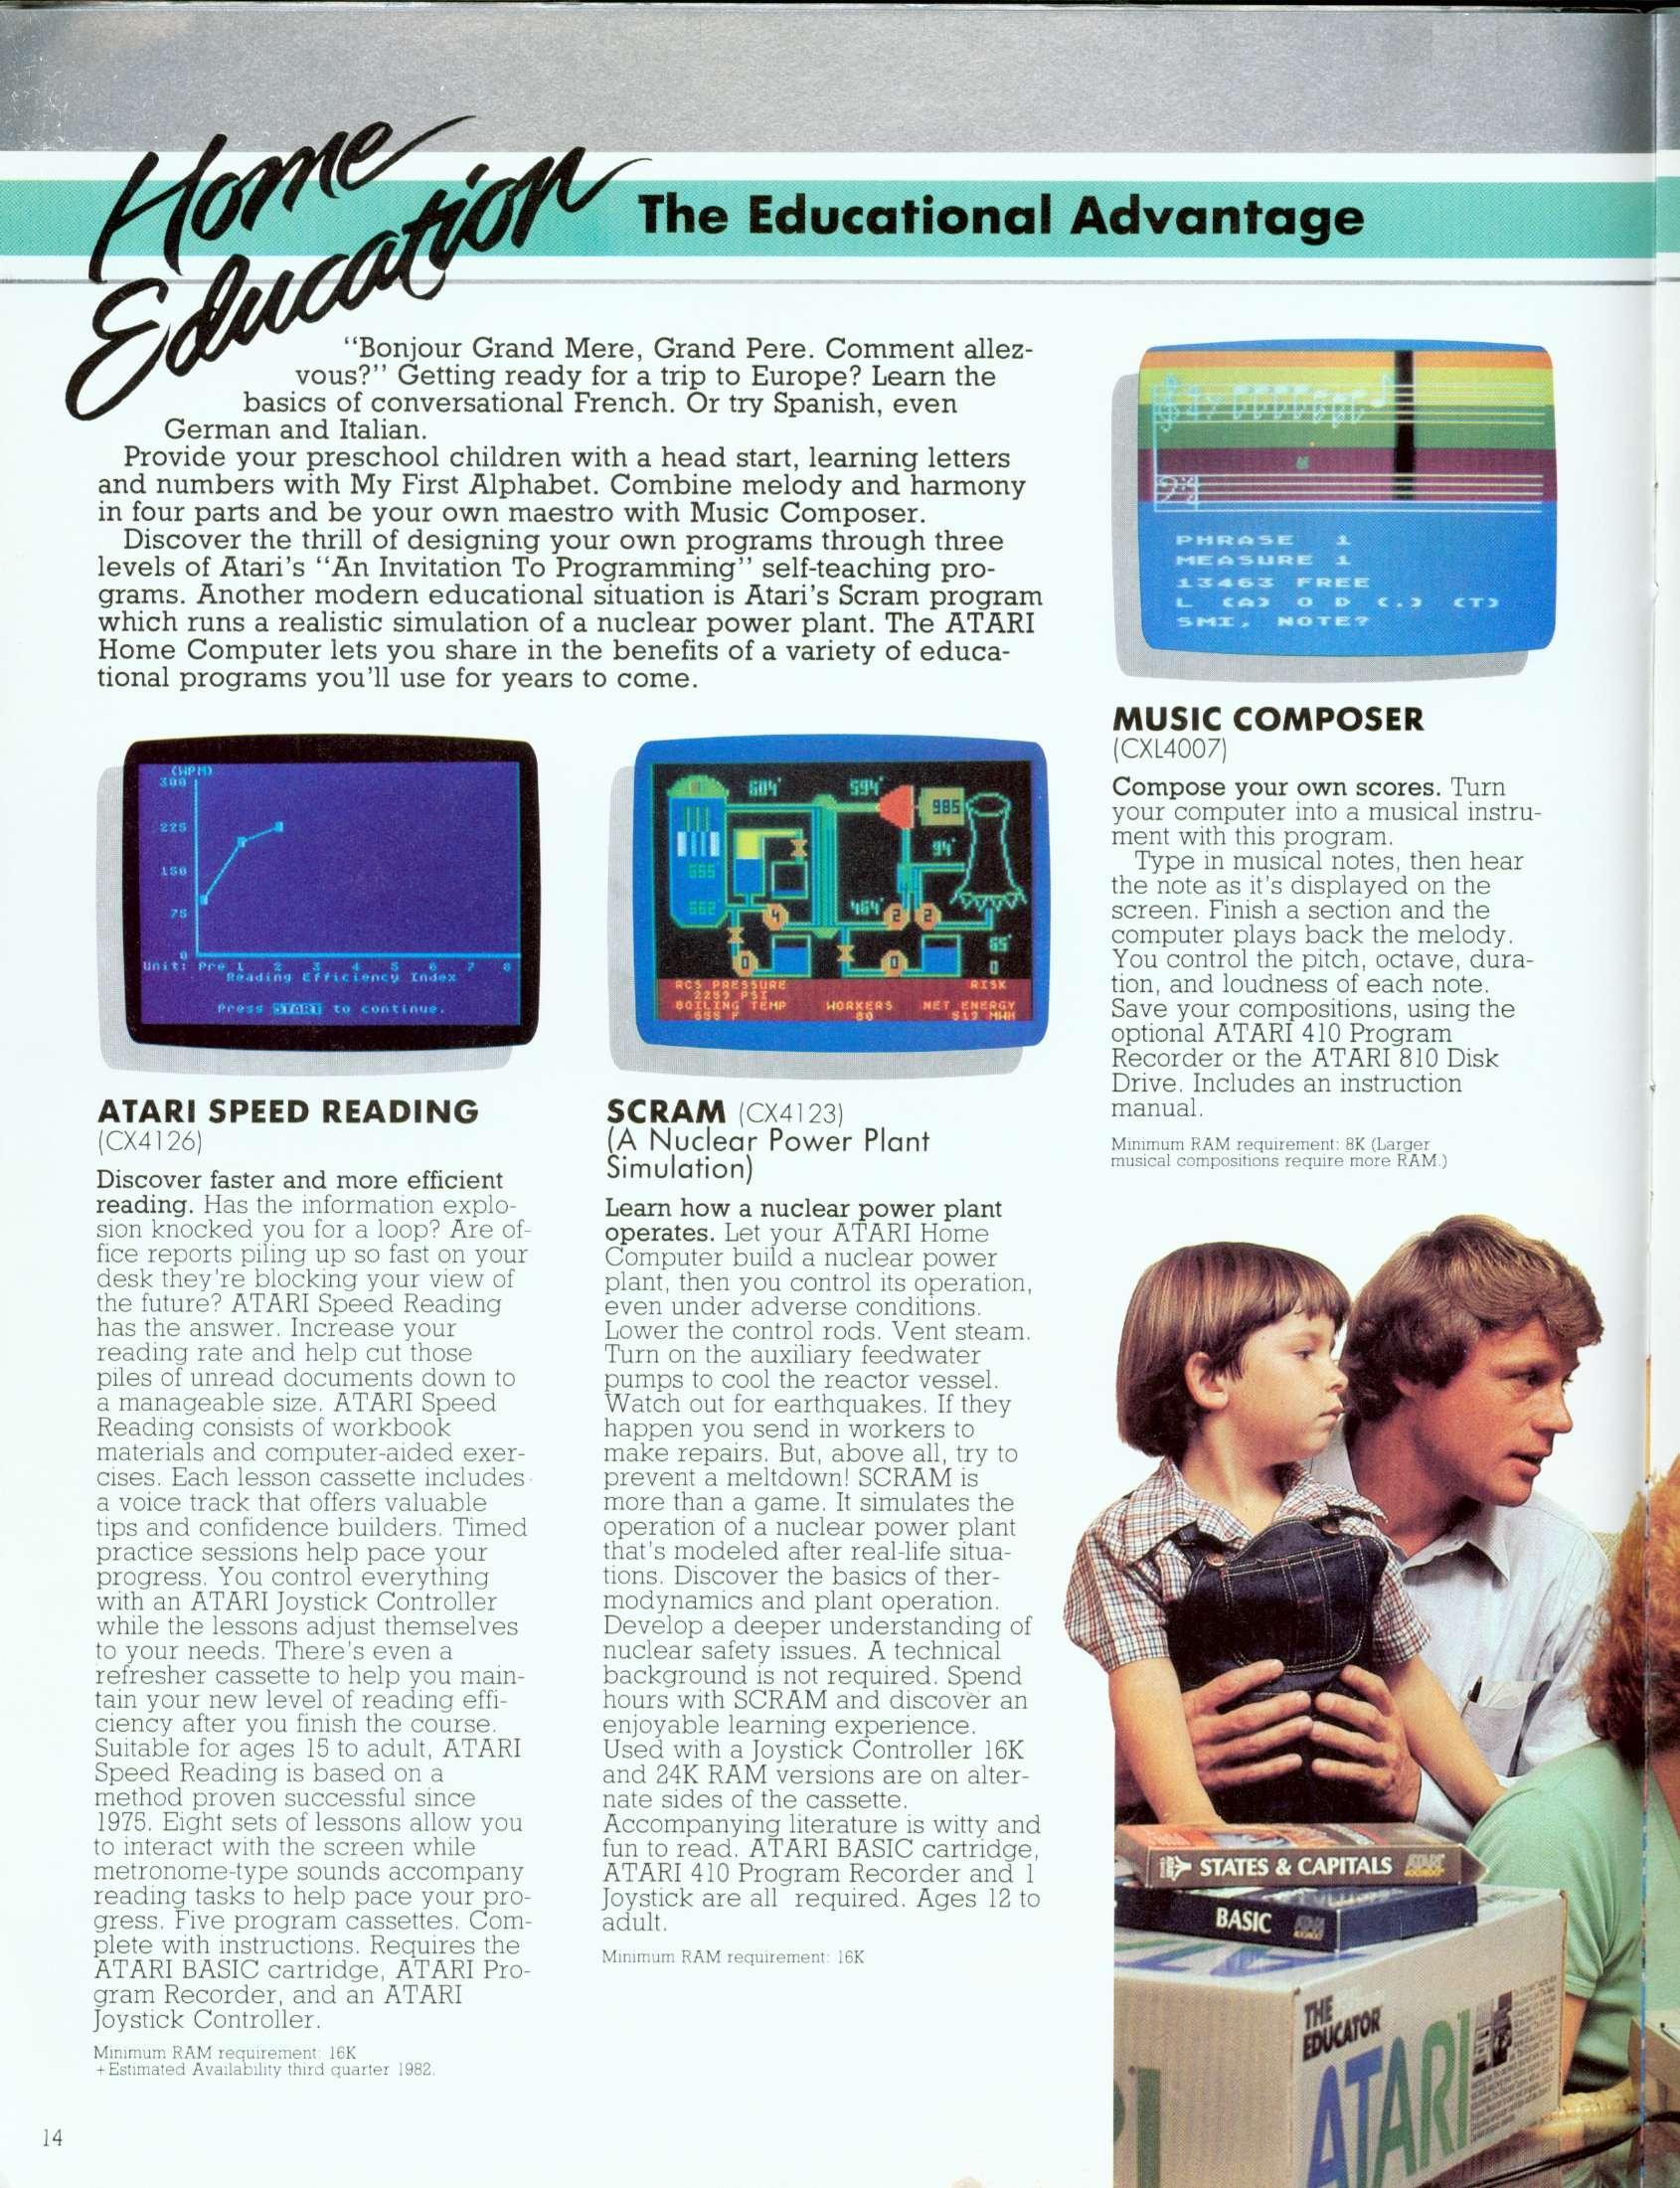 Atari Speed Reading/Atari_Speed_Reading_CX4126-5.jpg